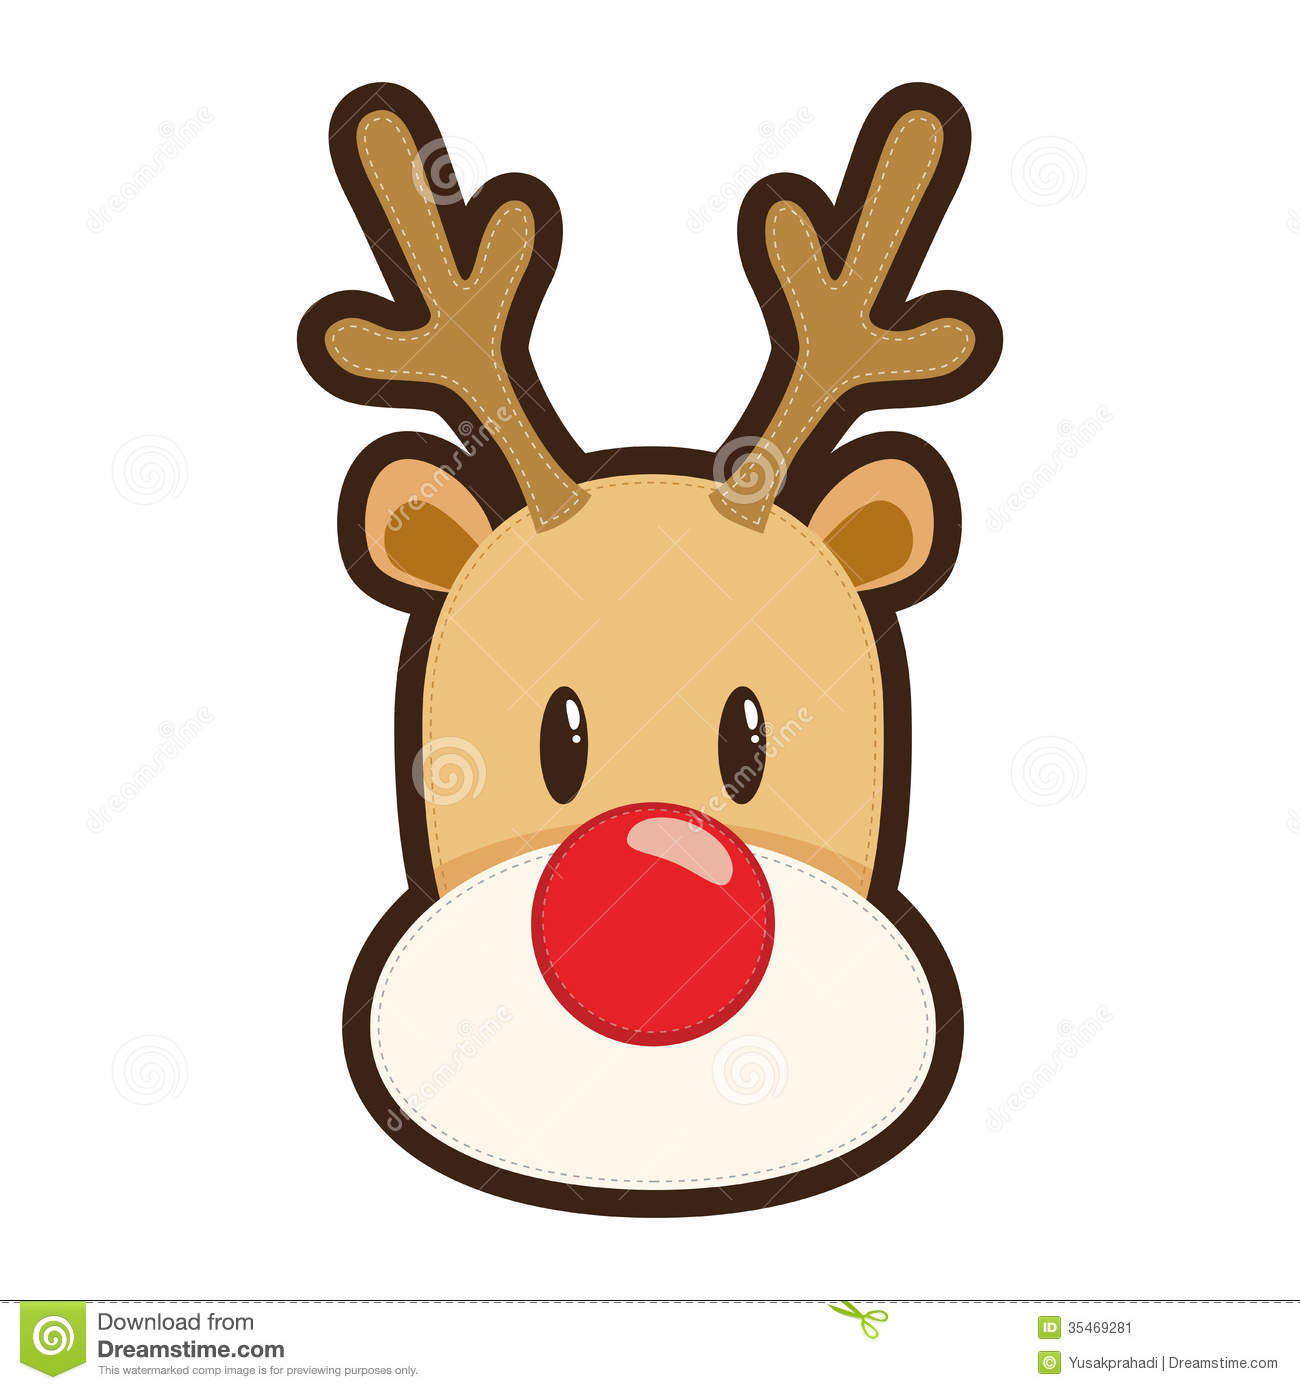 Cartoon Illustration Of Rudolph The Red Nosed Reindeer White